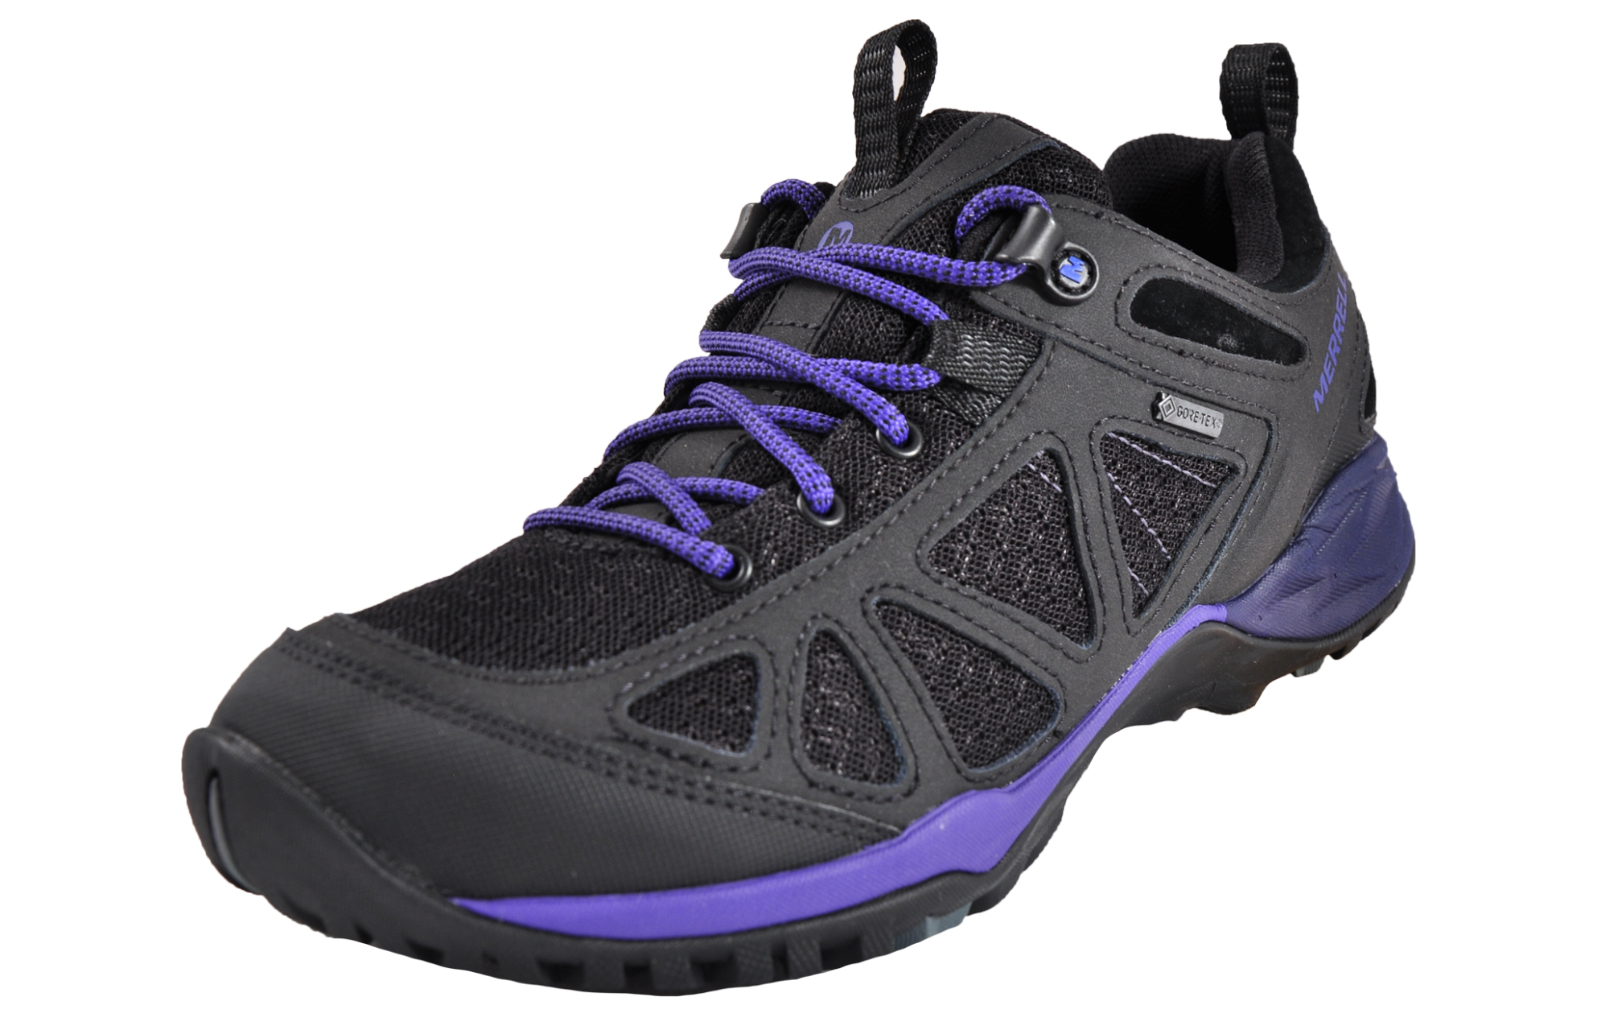 Merrell Siren Sport GTX Gore-Tex Waterproof Womens - ML193227